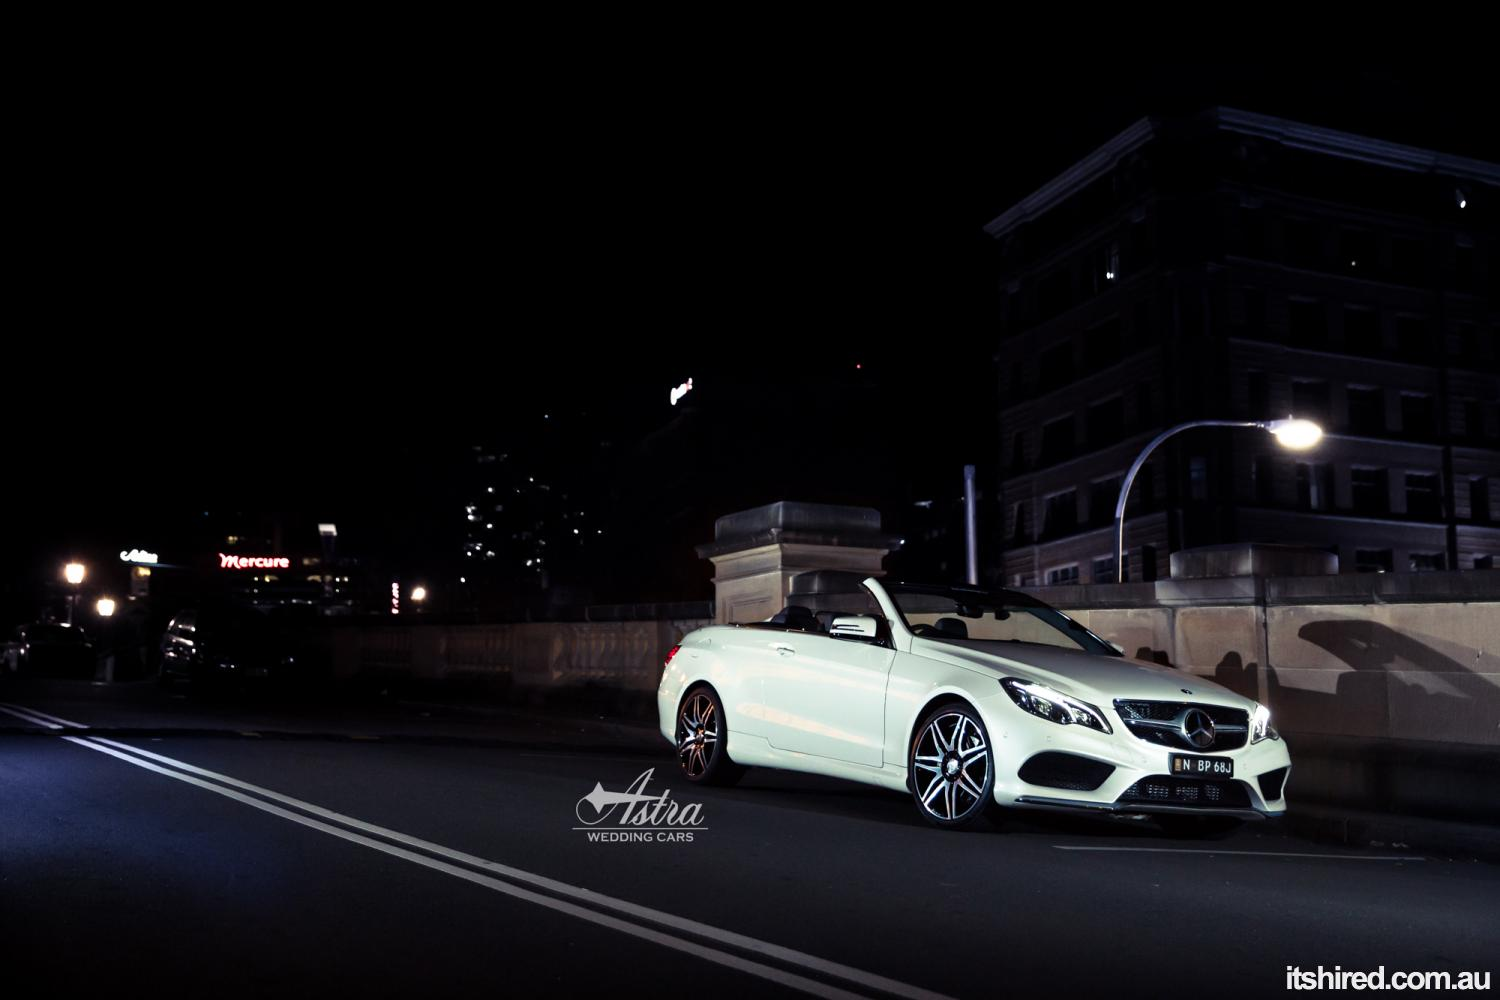 Mercedes E-Class Wedding Car Hire Sydney Astra Wedding Cars